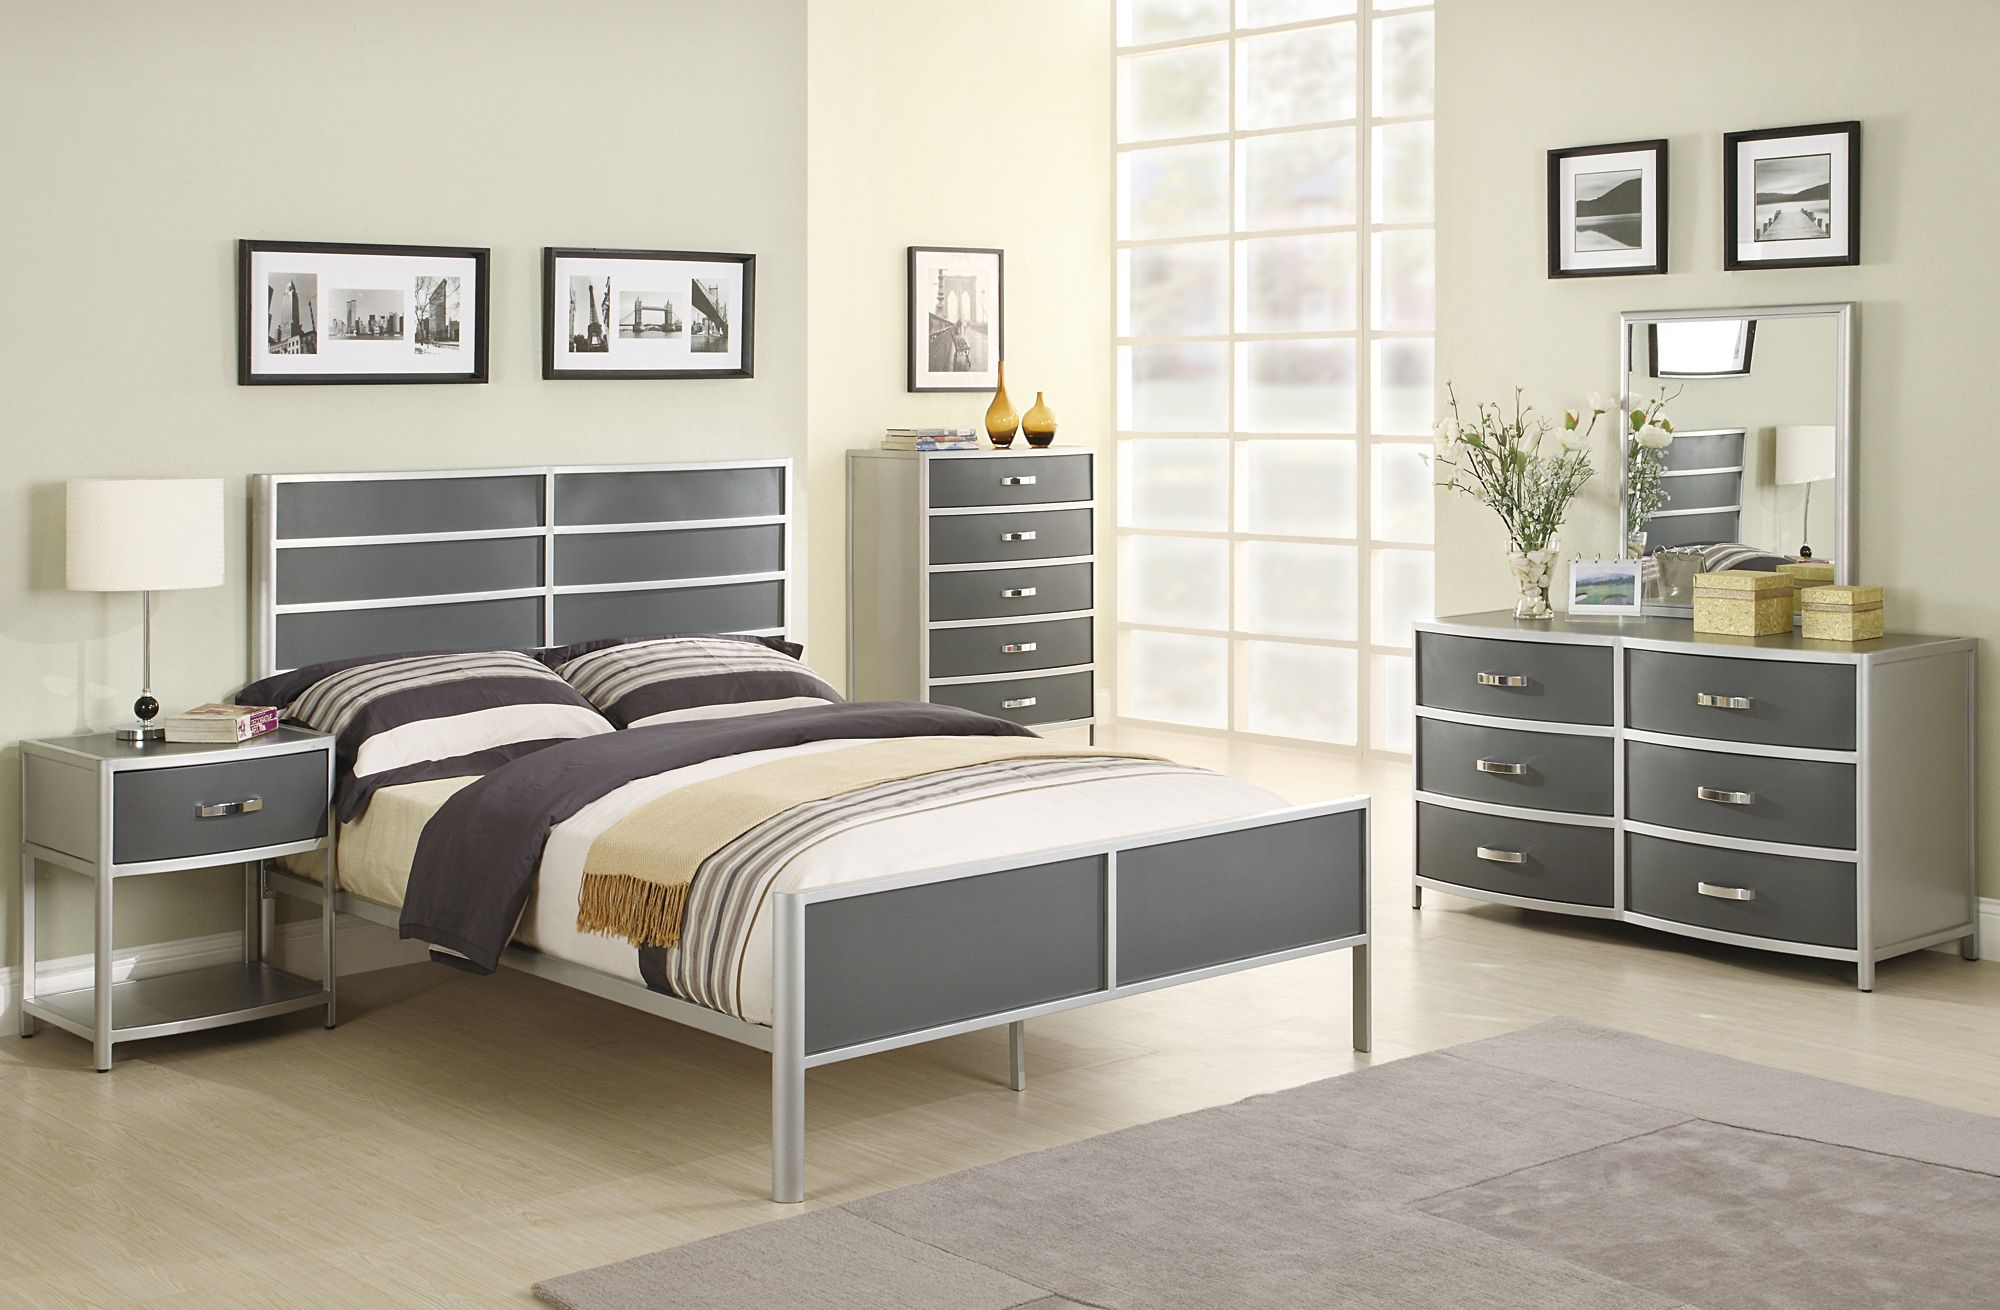 Best Modern Twin Bedroom Set Idea With Metal Master Bed And 400 x 300